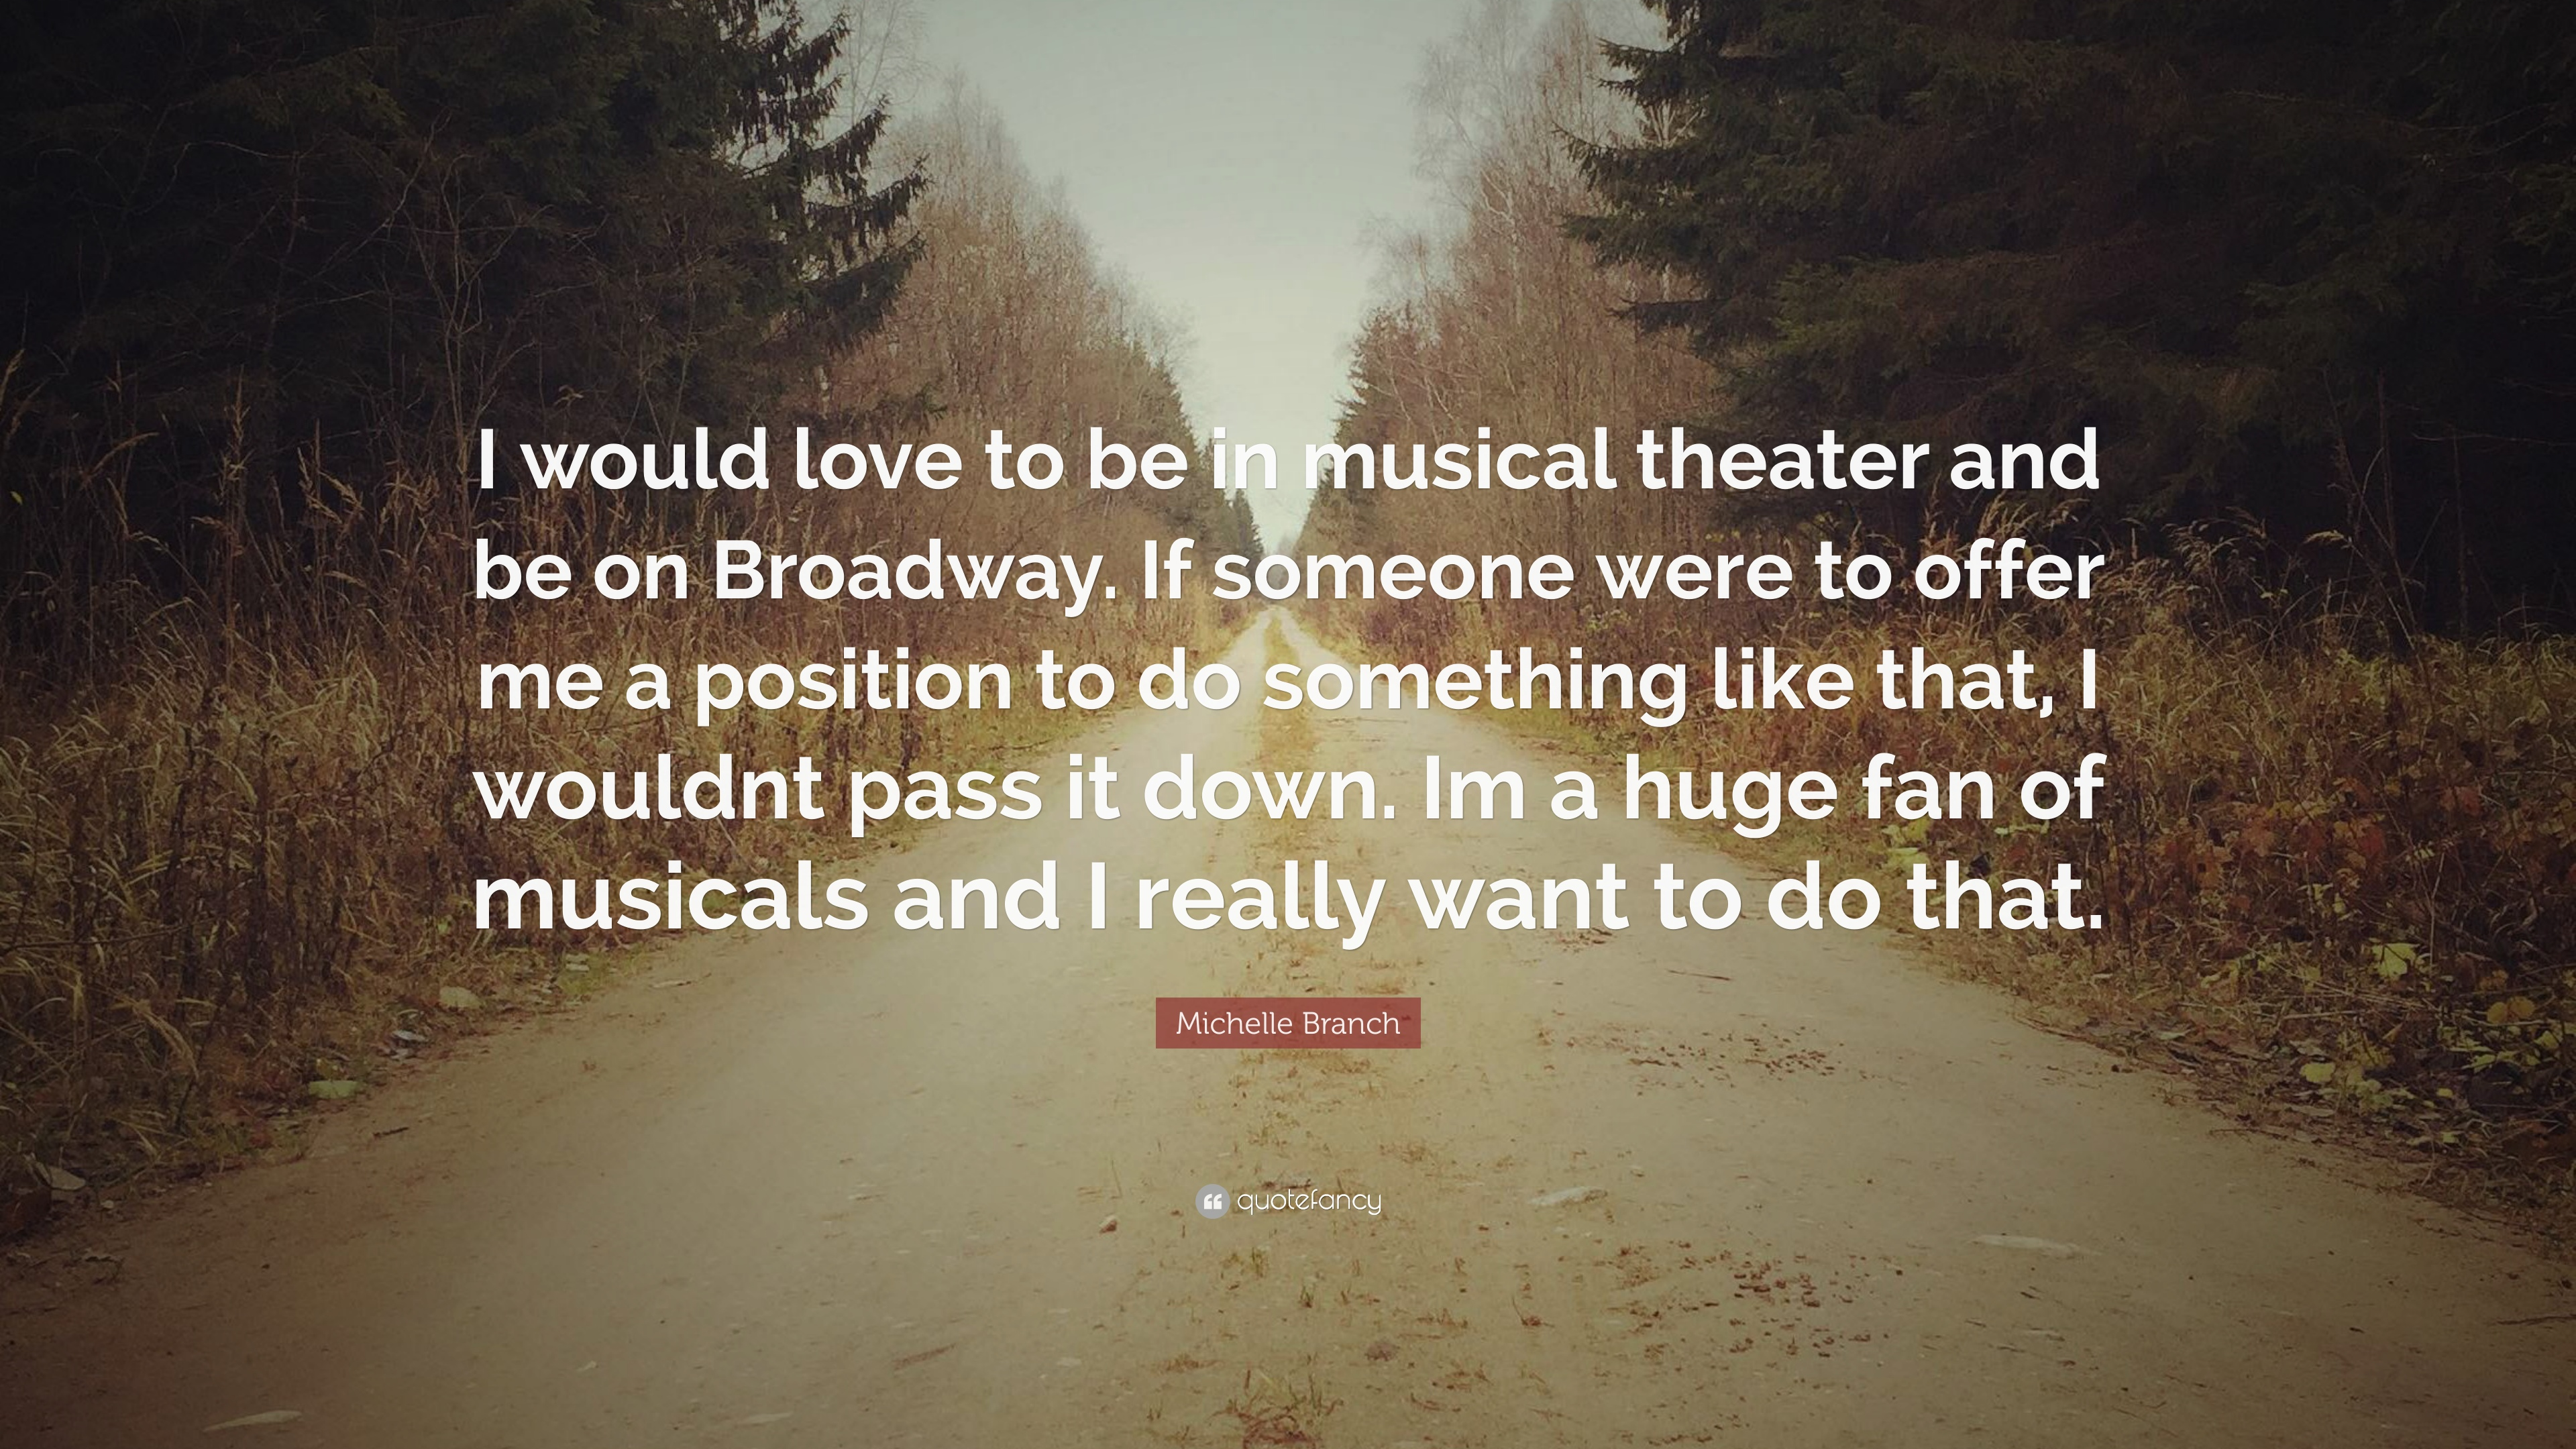 Michelle Branch Quote I Would Love To Be In Musical Theater And Be On Broadway If Someone Were To Offer Me A Position To Do Something Like Th 7 Wallpapers Quotefancy